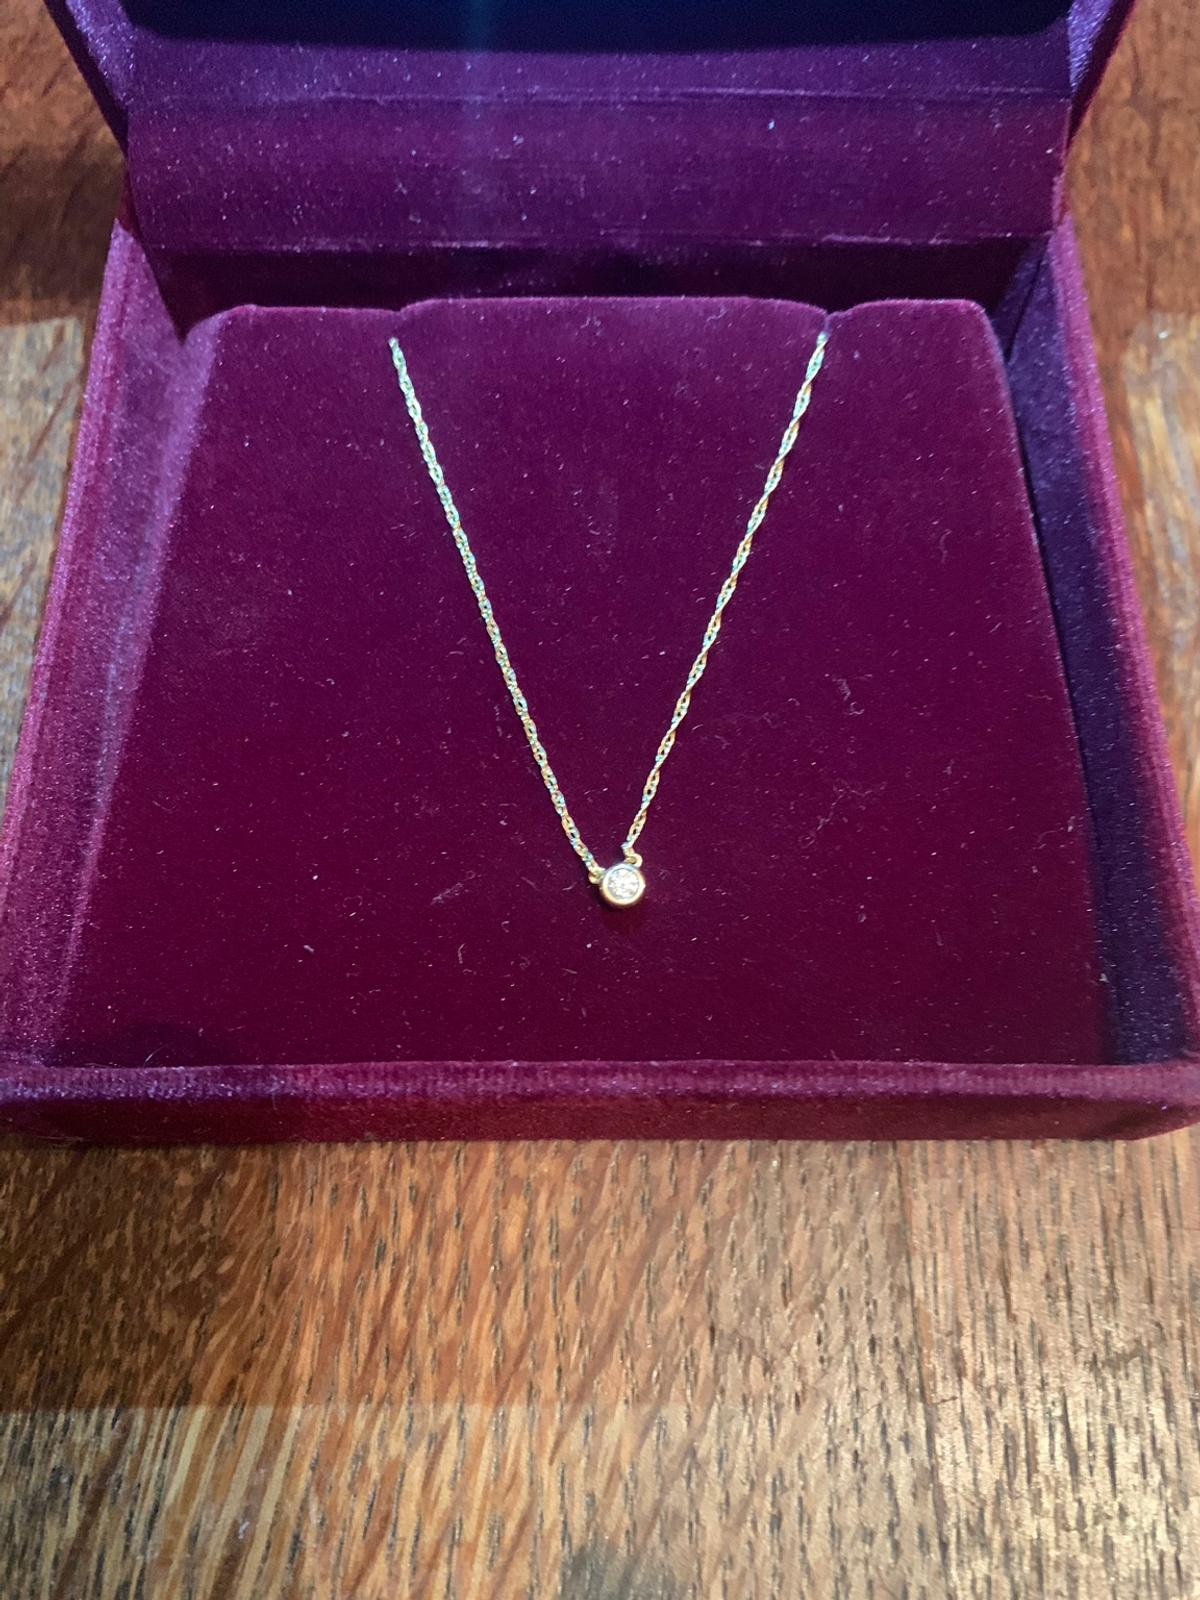 741010b61fc81 Tada and Toy Diamond Necklace in N15 London for £150.00 for sale ...